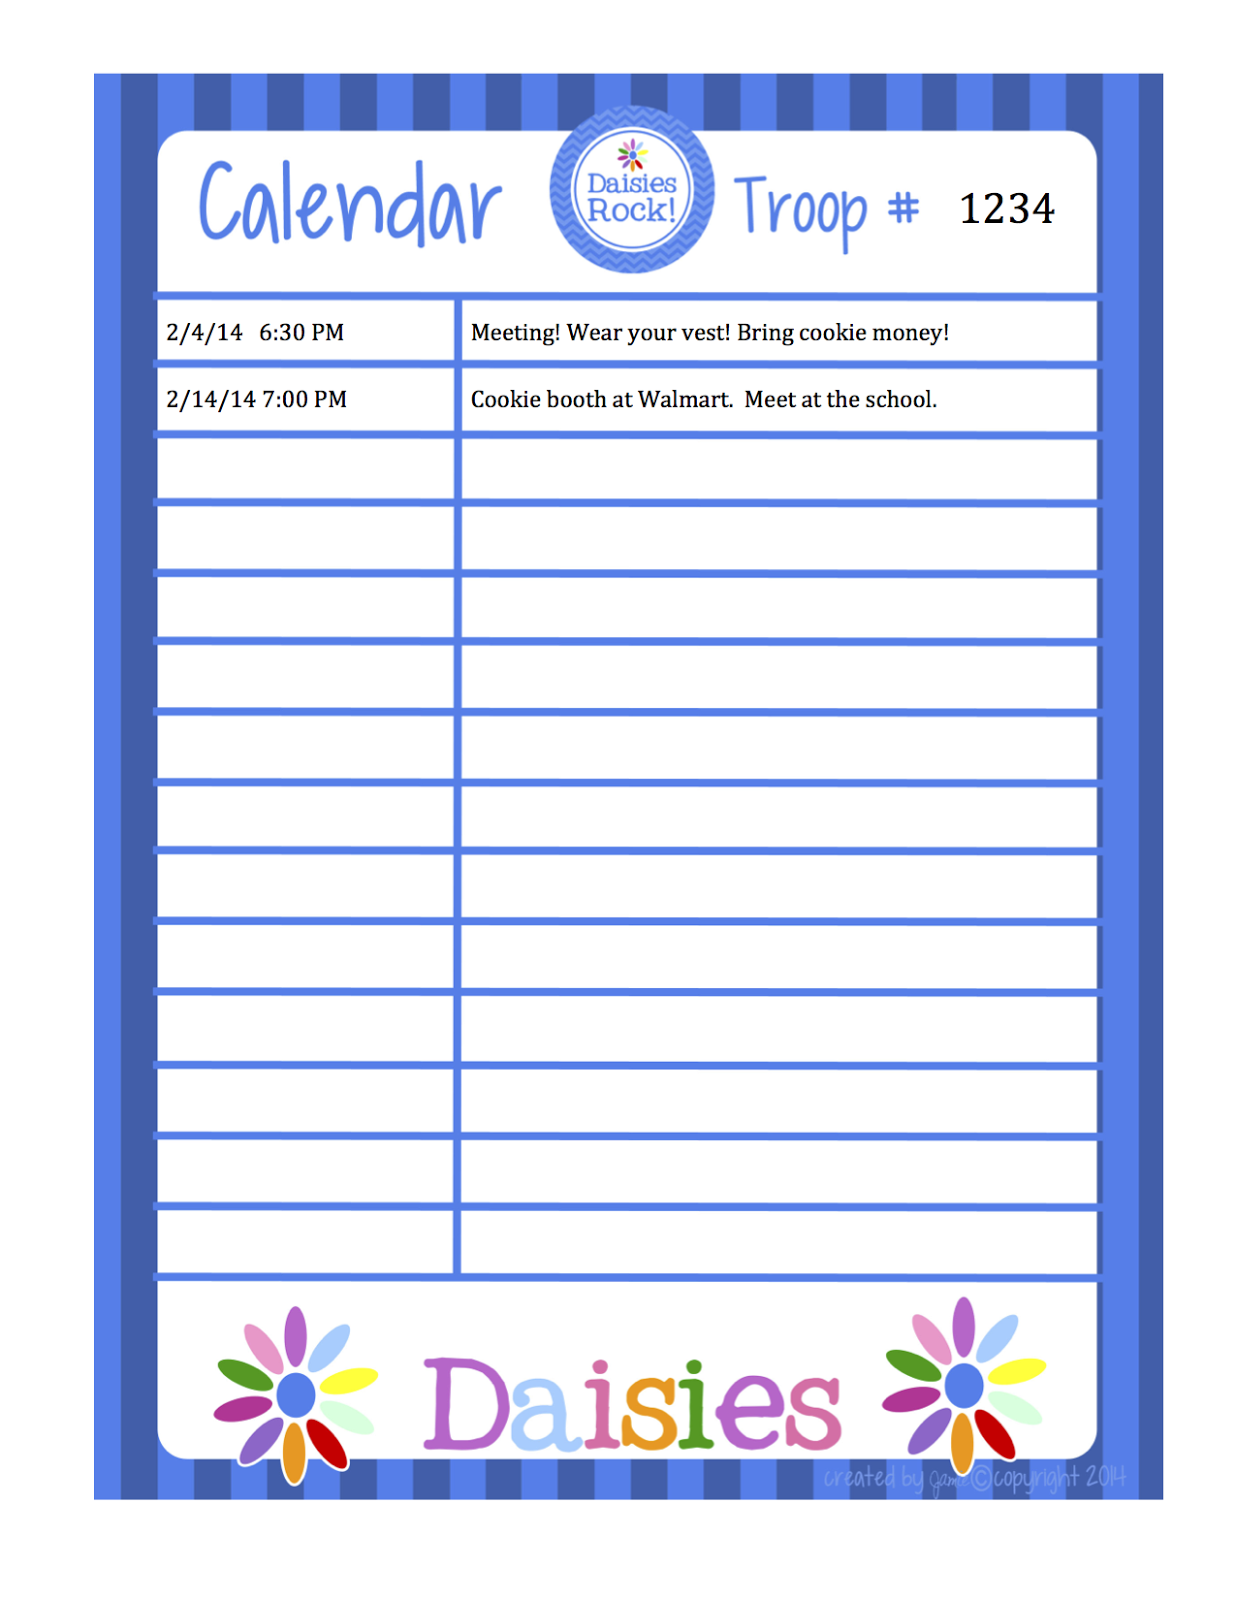 boy scout calendar template - fashionable moms girl scouts daisies calendar word